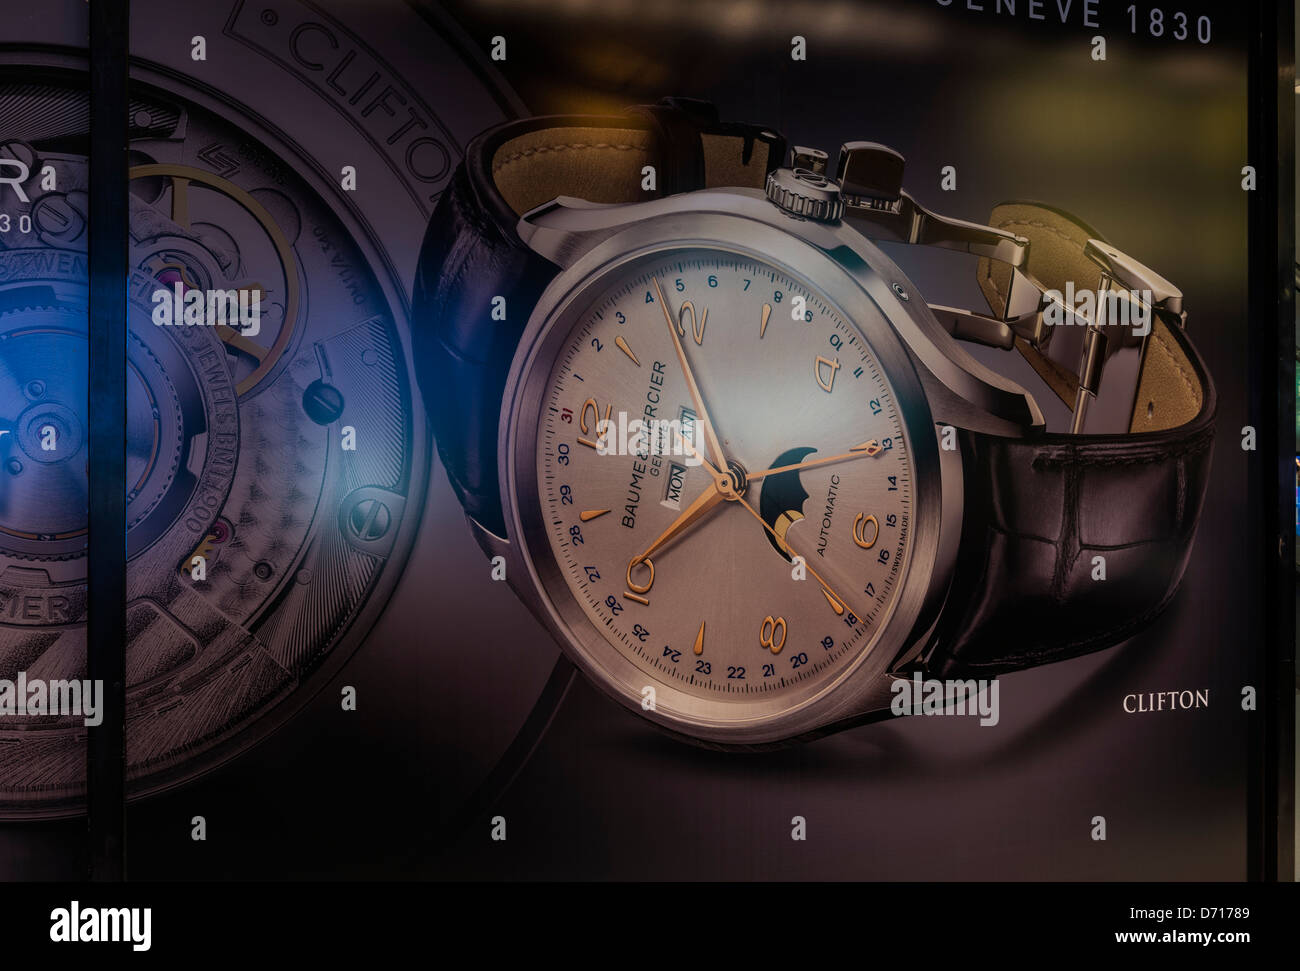 Watch, BAUME & MERCIER - Stock Image